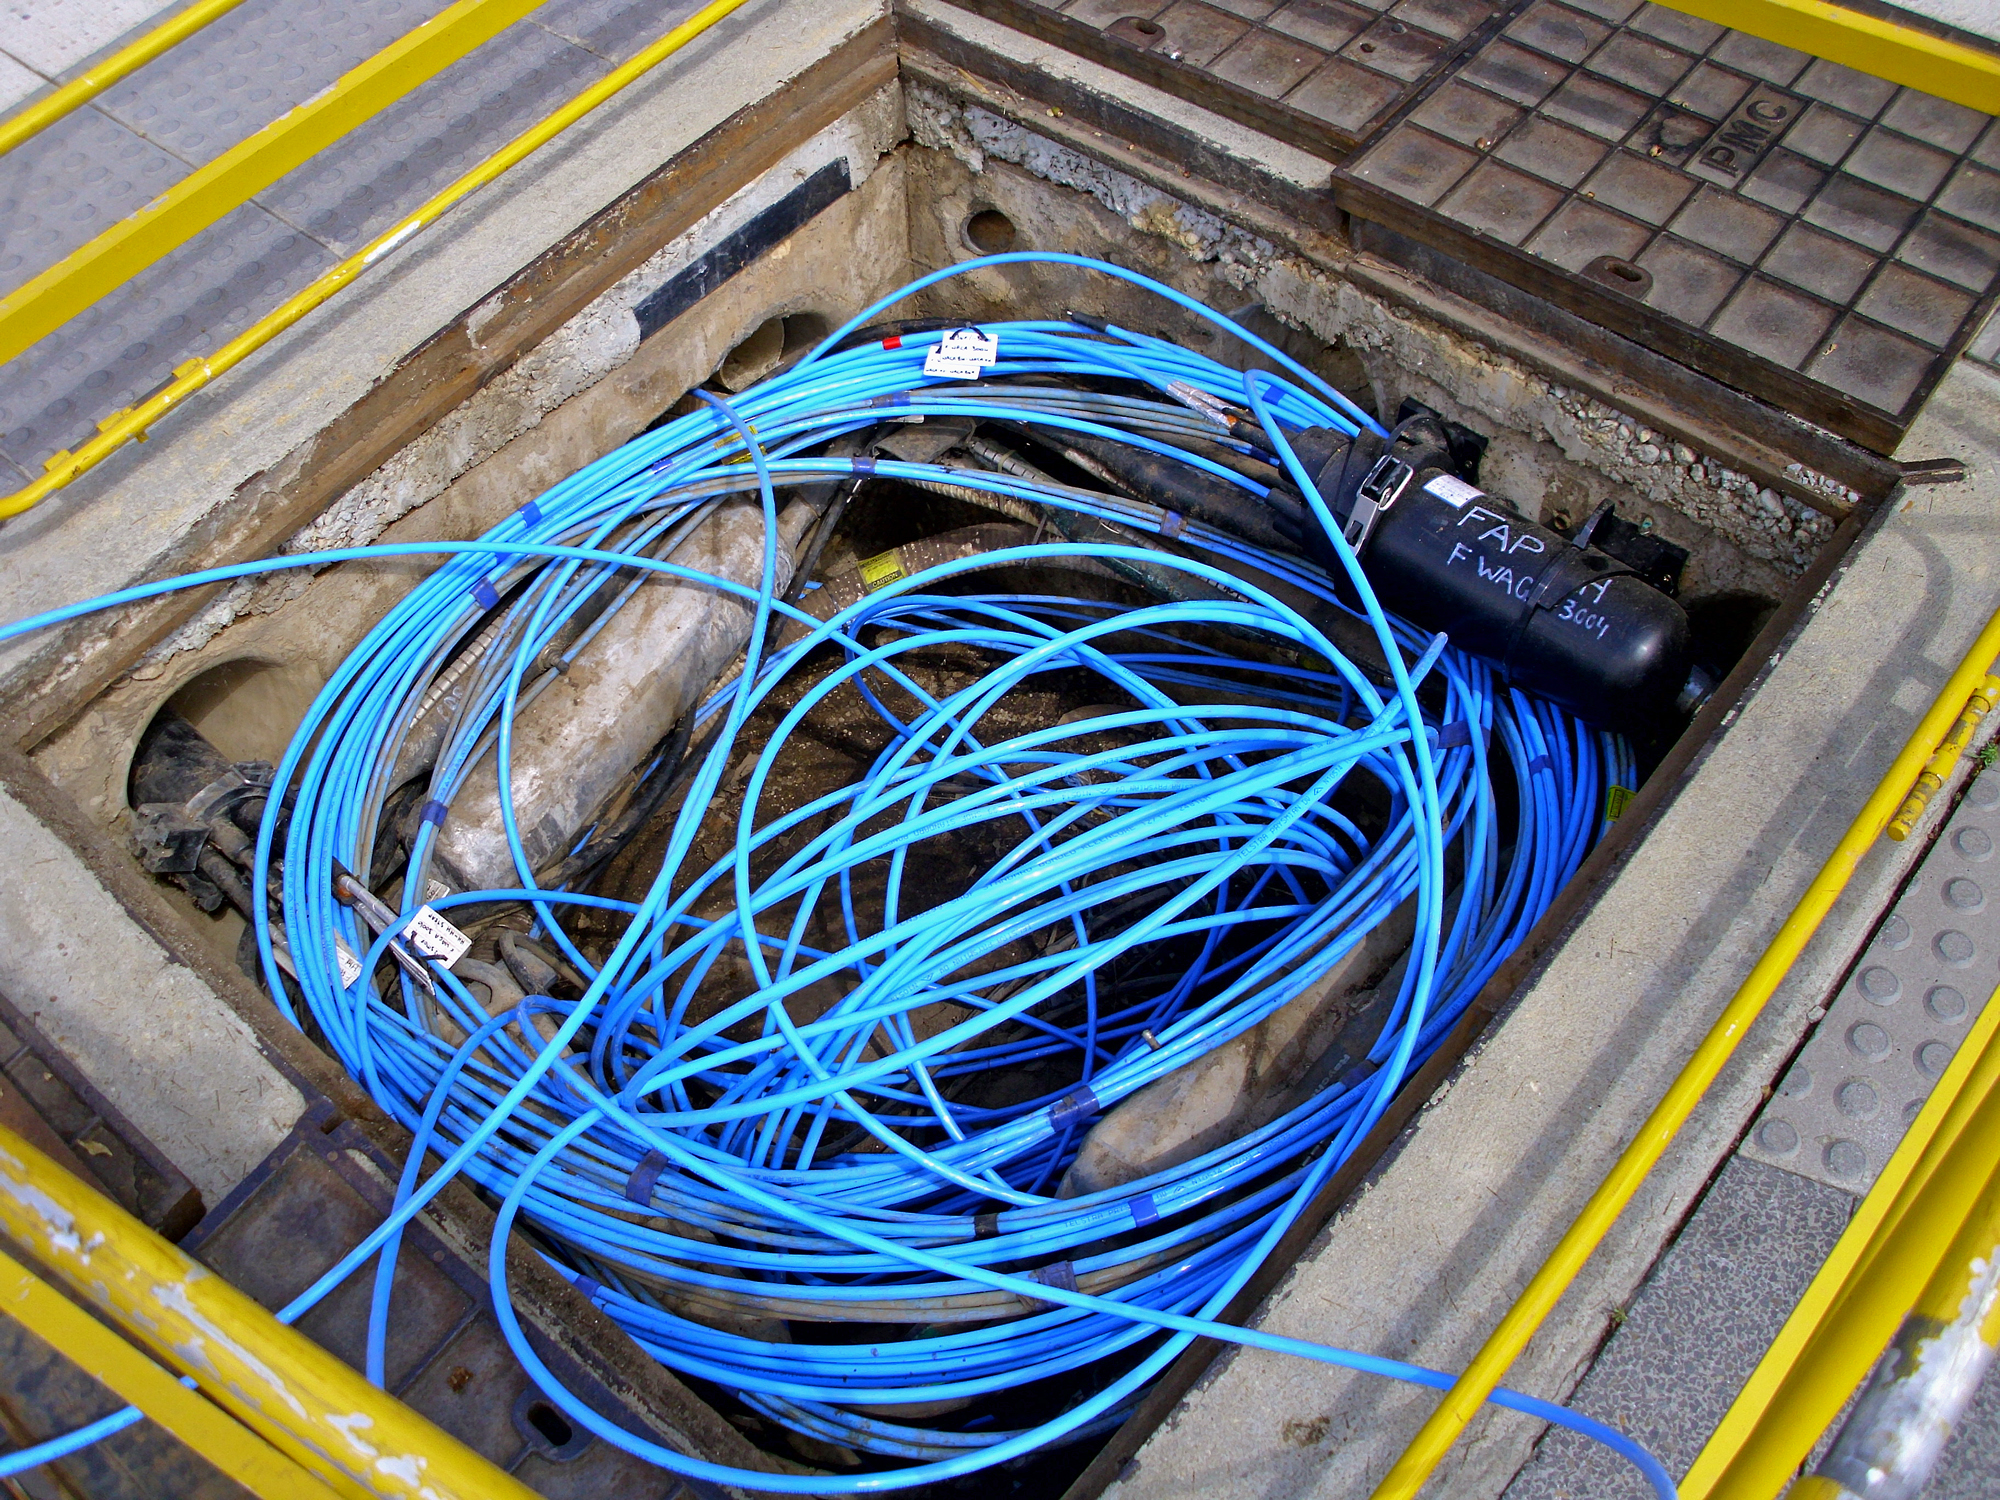 The FBI is still hunting for California\'s fiber-optic cable cutter